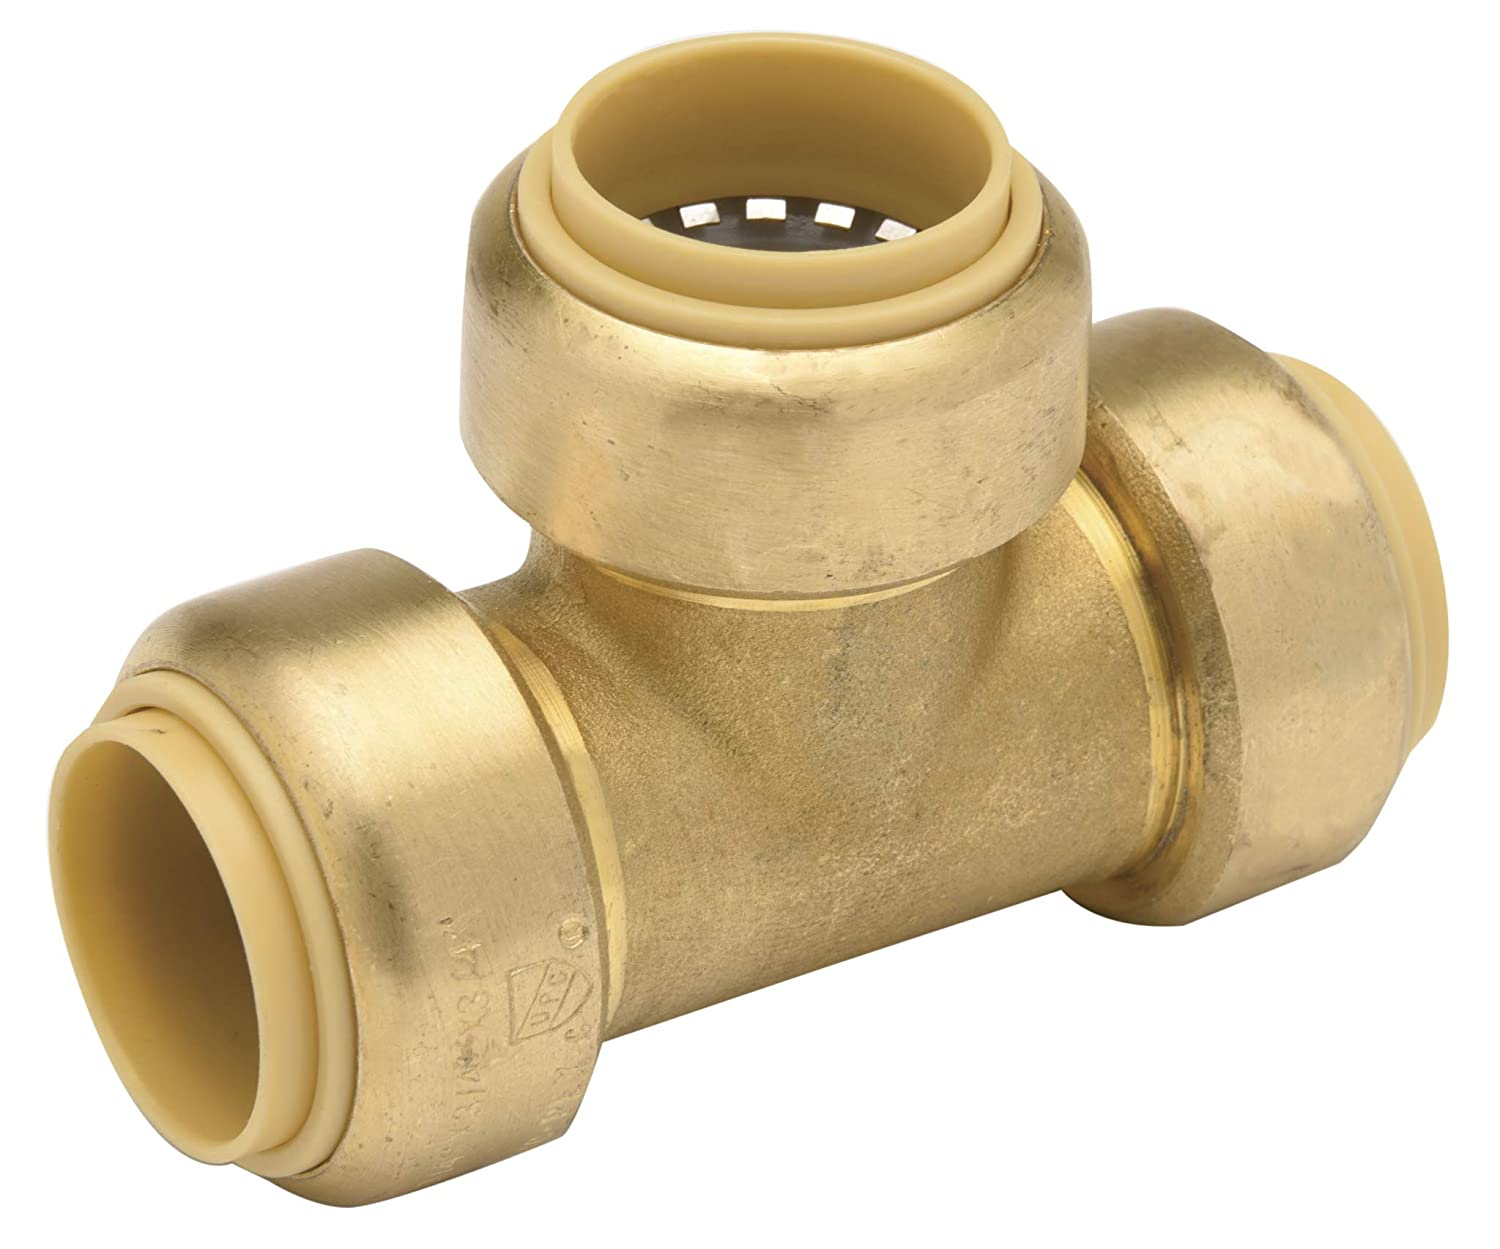 X-Large Brass 3//4 X 3//4 X 1//2 Push Connection Copper Pack of 6 Zurn QQZBT443G Z-Bite Reducing Tee